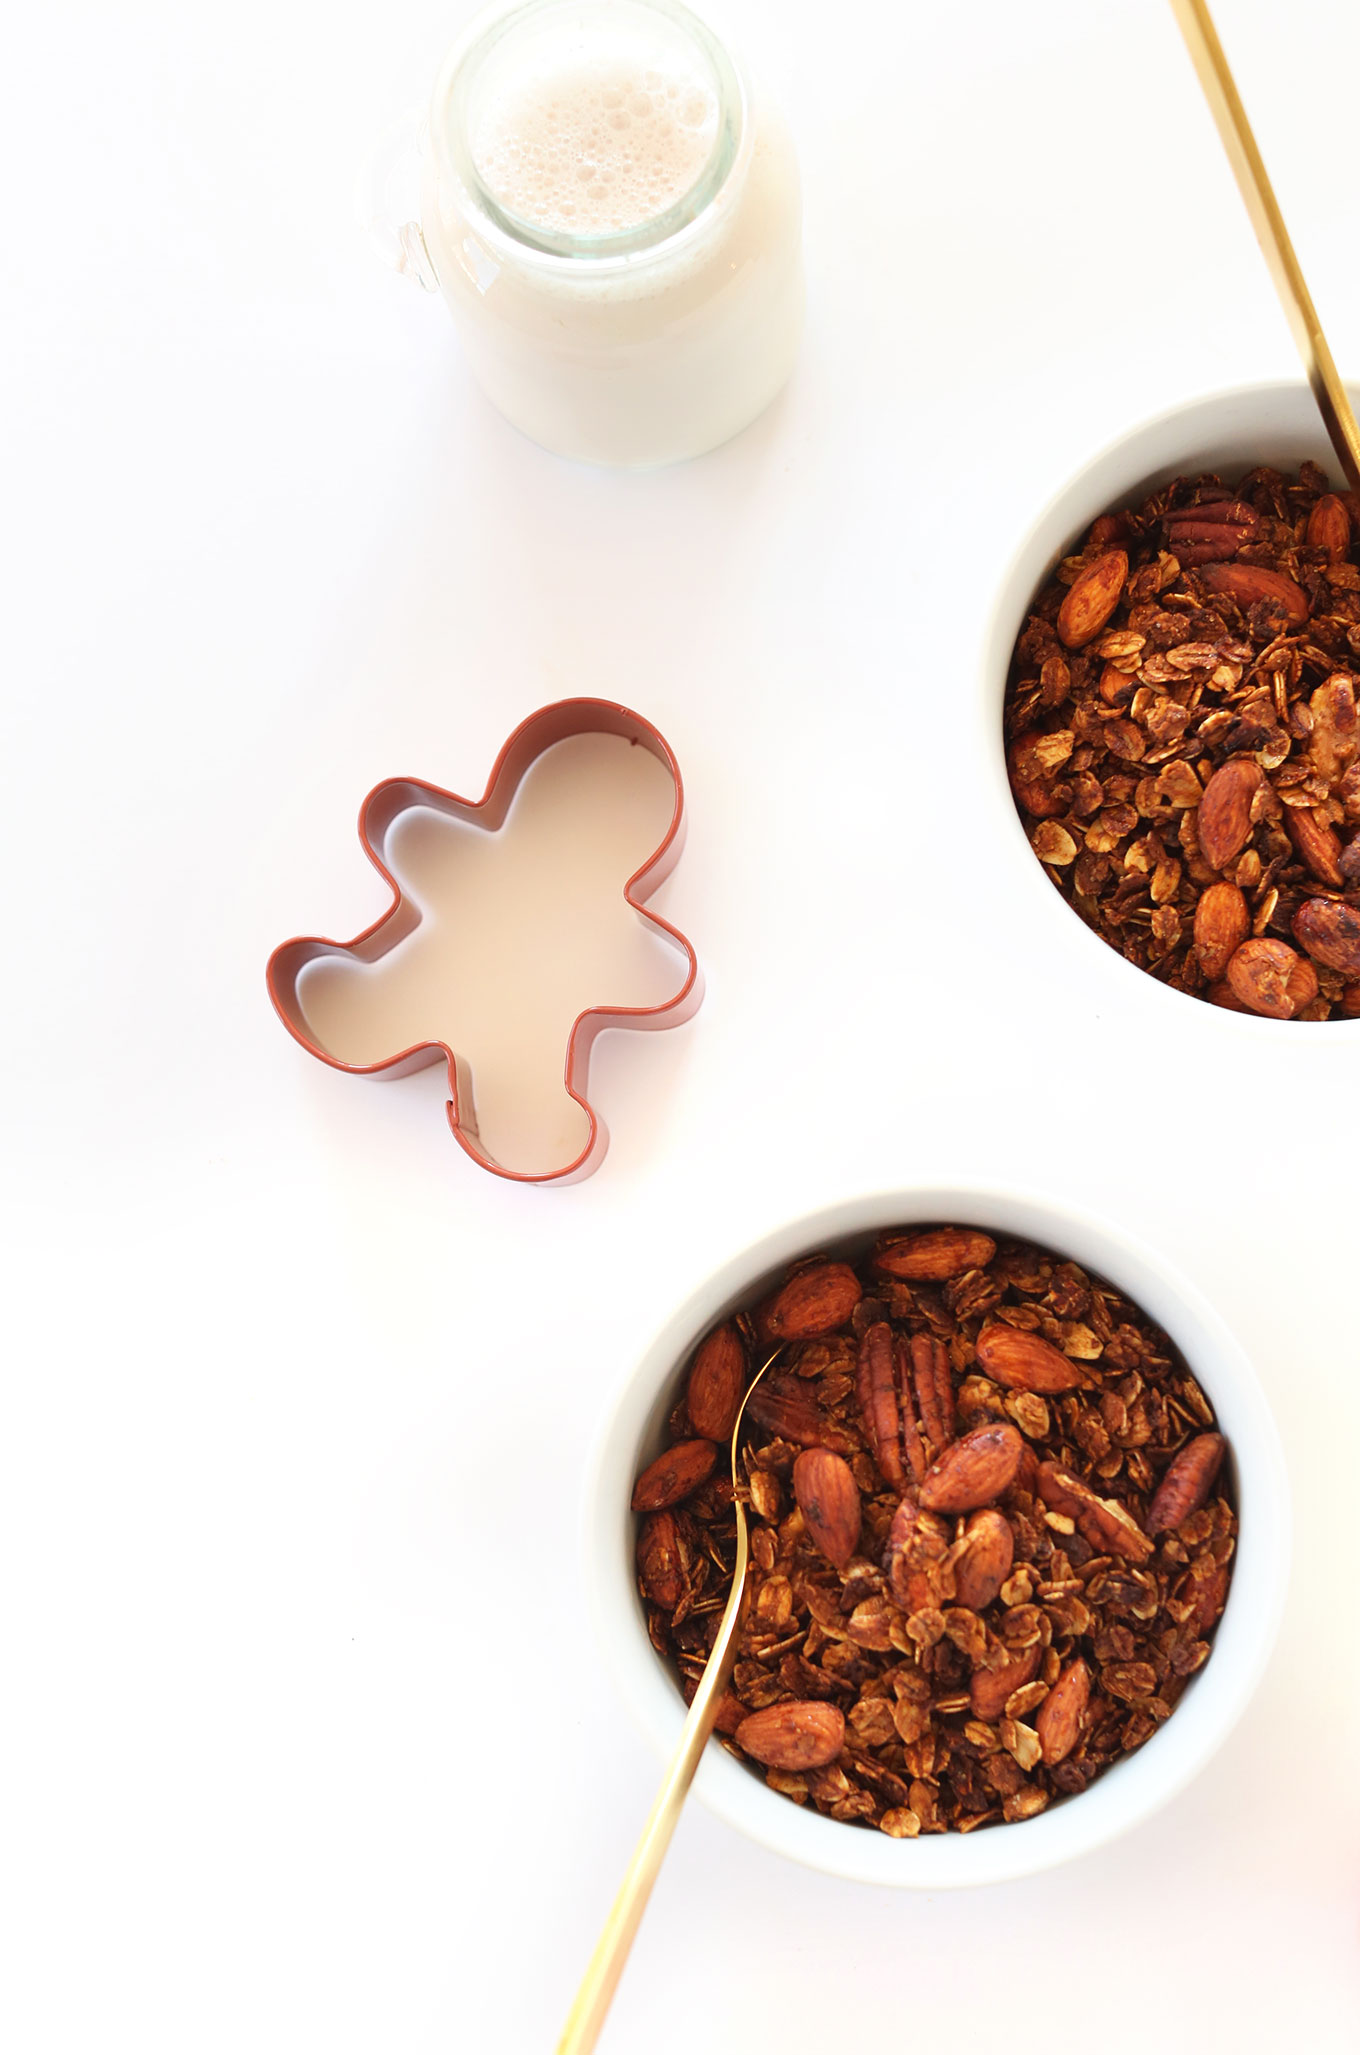 Bowls of our delicious Gingerbread Granola recipe